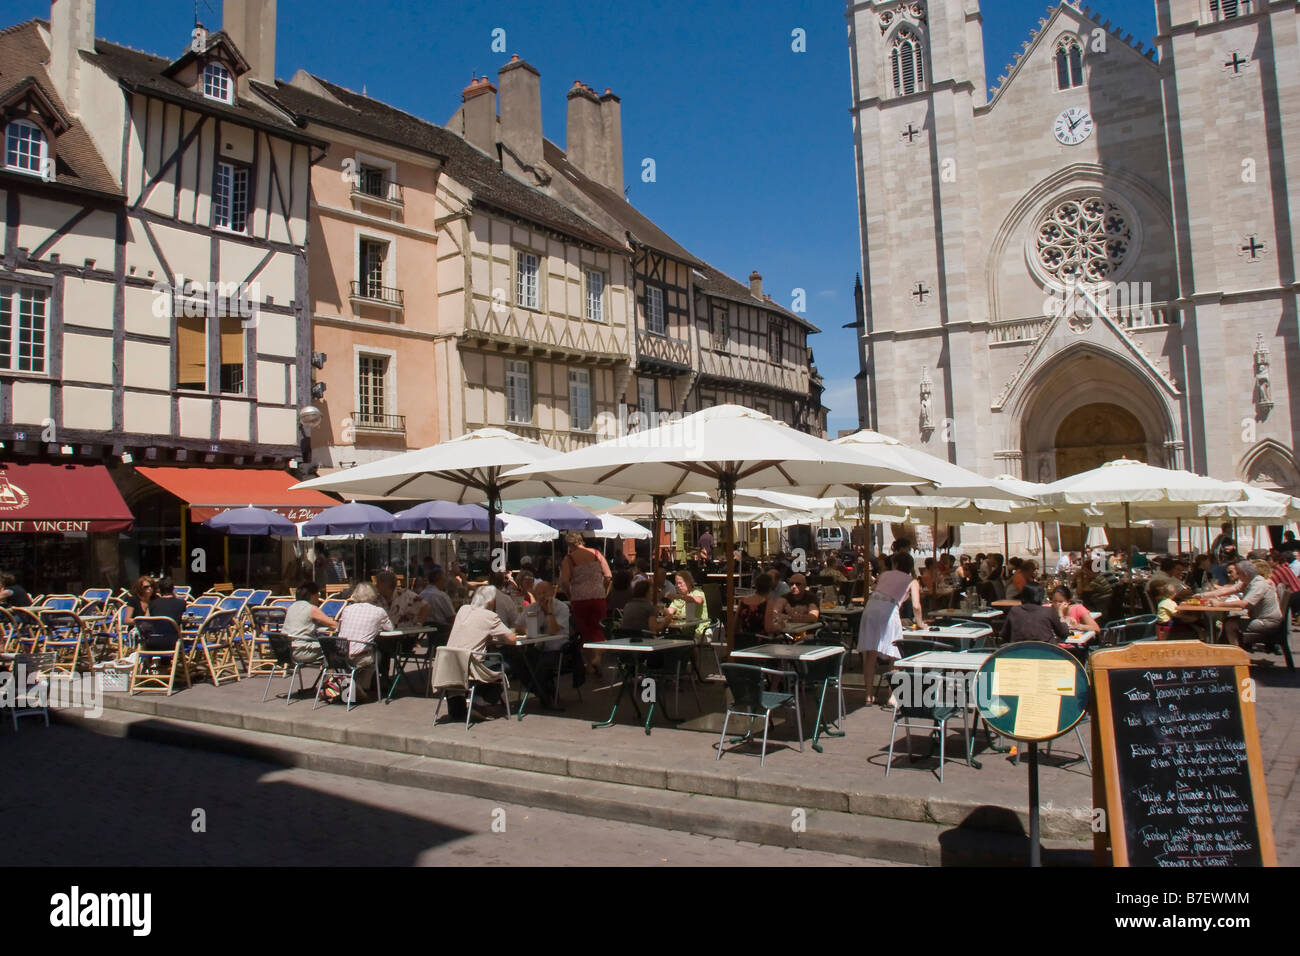 place st vincent chalon sur saone burgandy france eu stock photo royalty free image 21840468. Black Bedroom Furniture Sets. Home Design Ideas